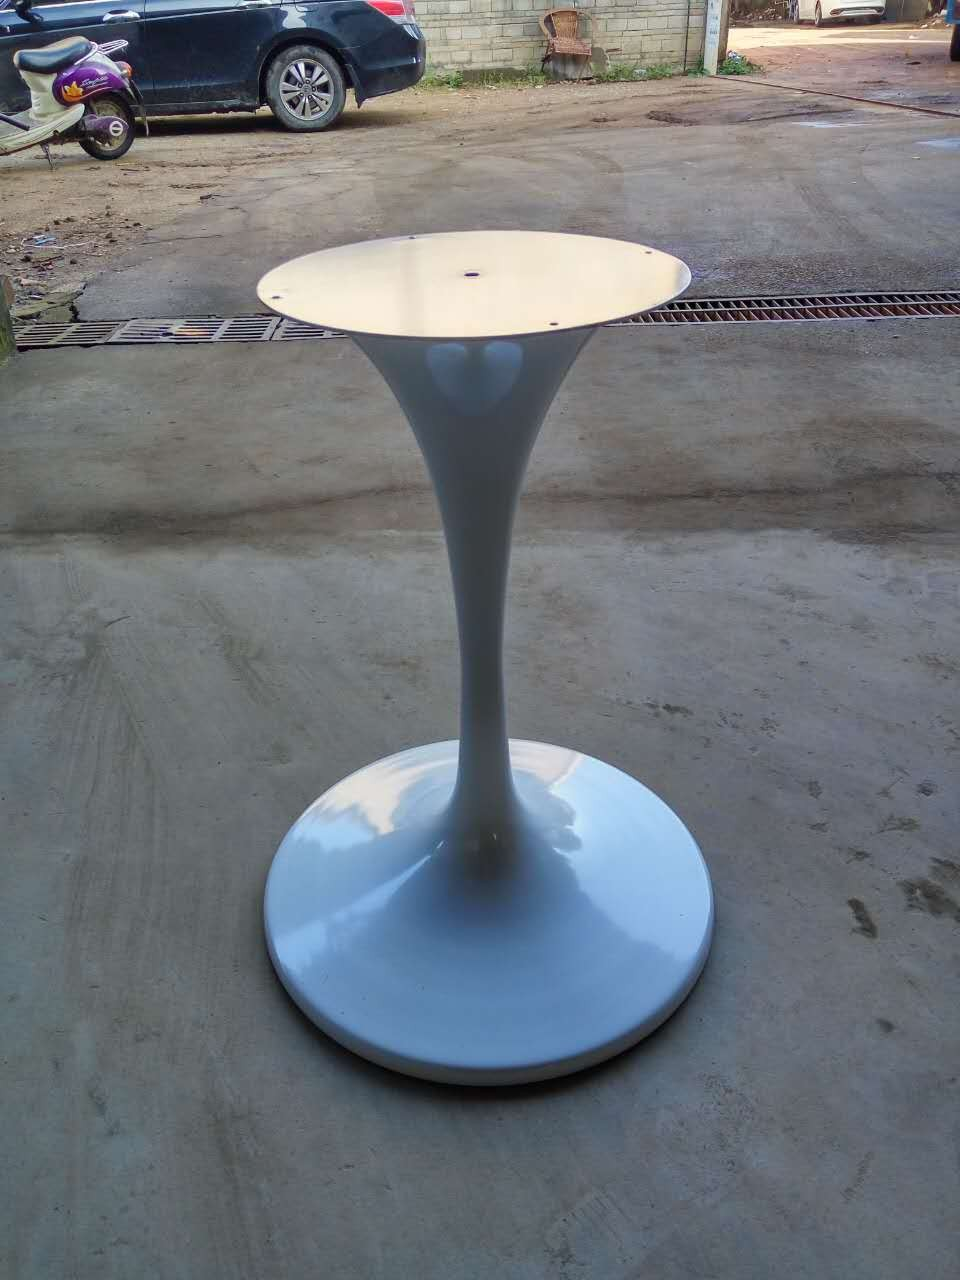 New Cast Iron Tulip Table Base Sculpture Granite Base For